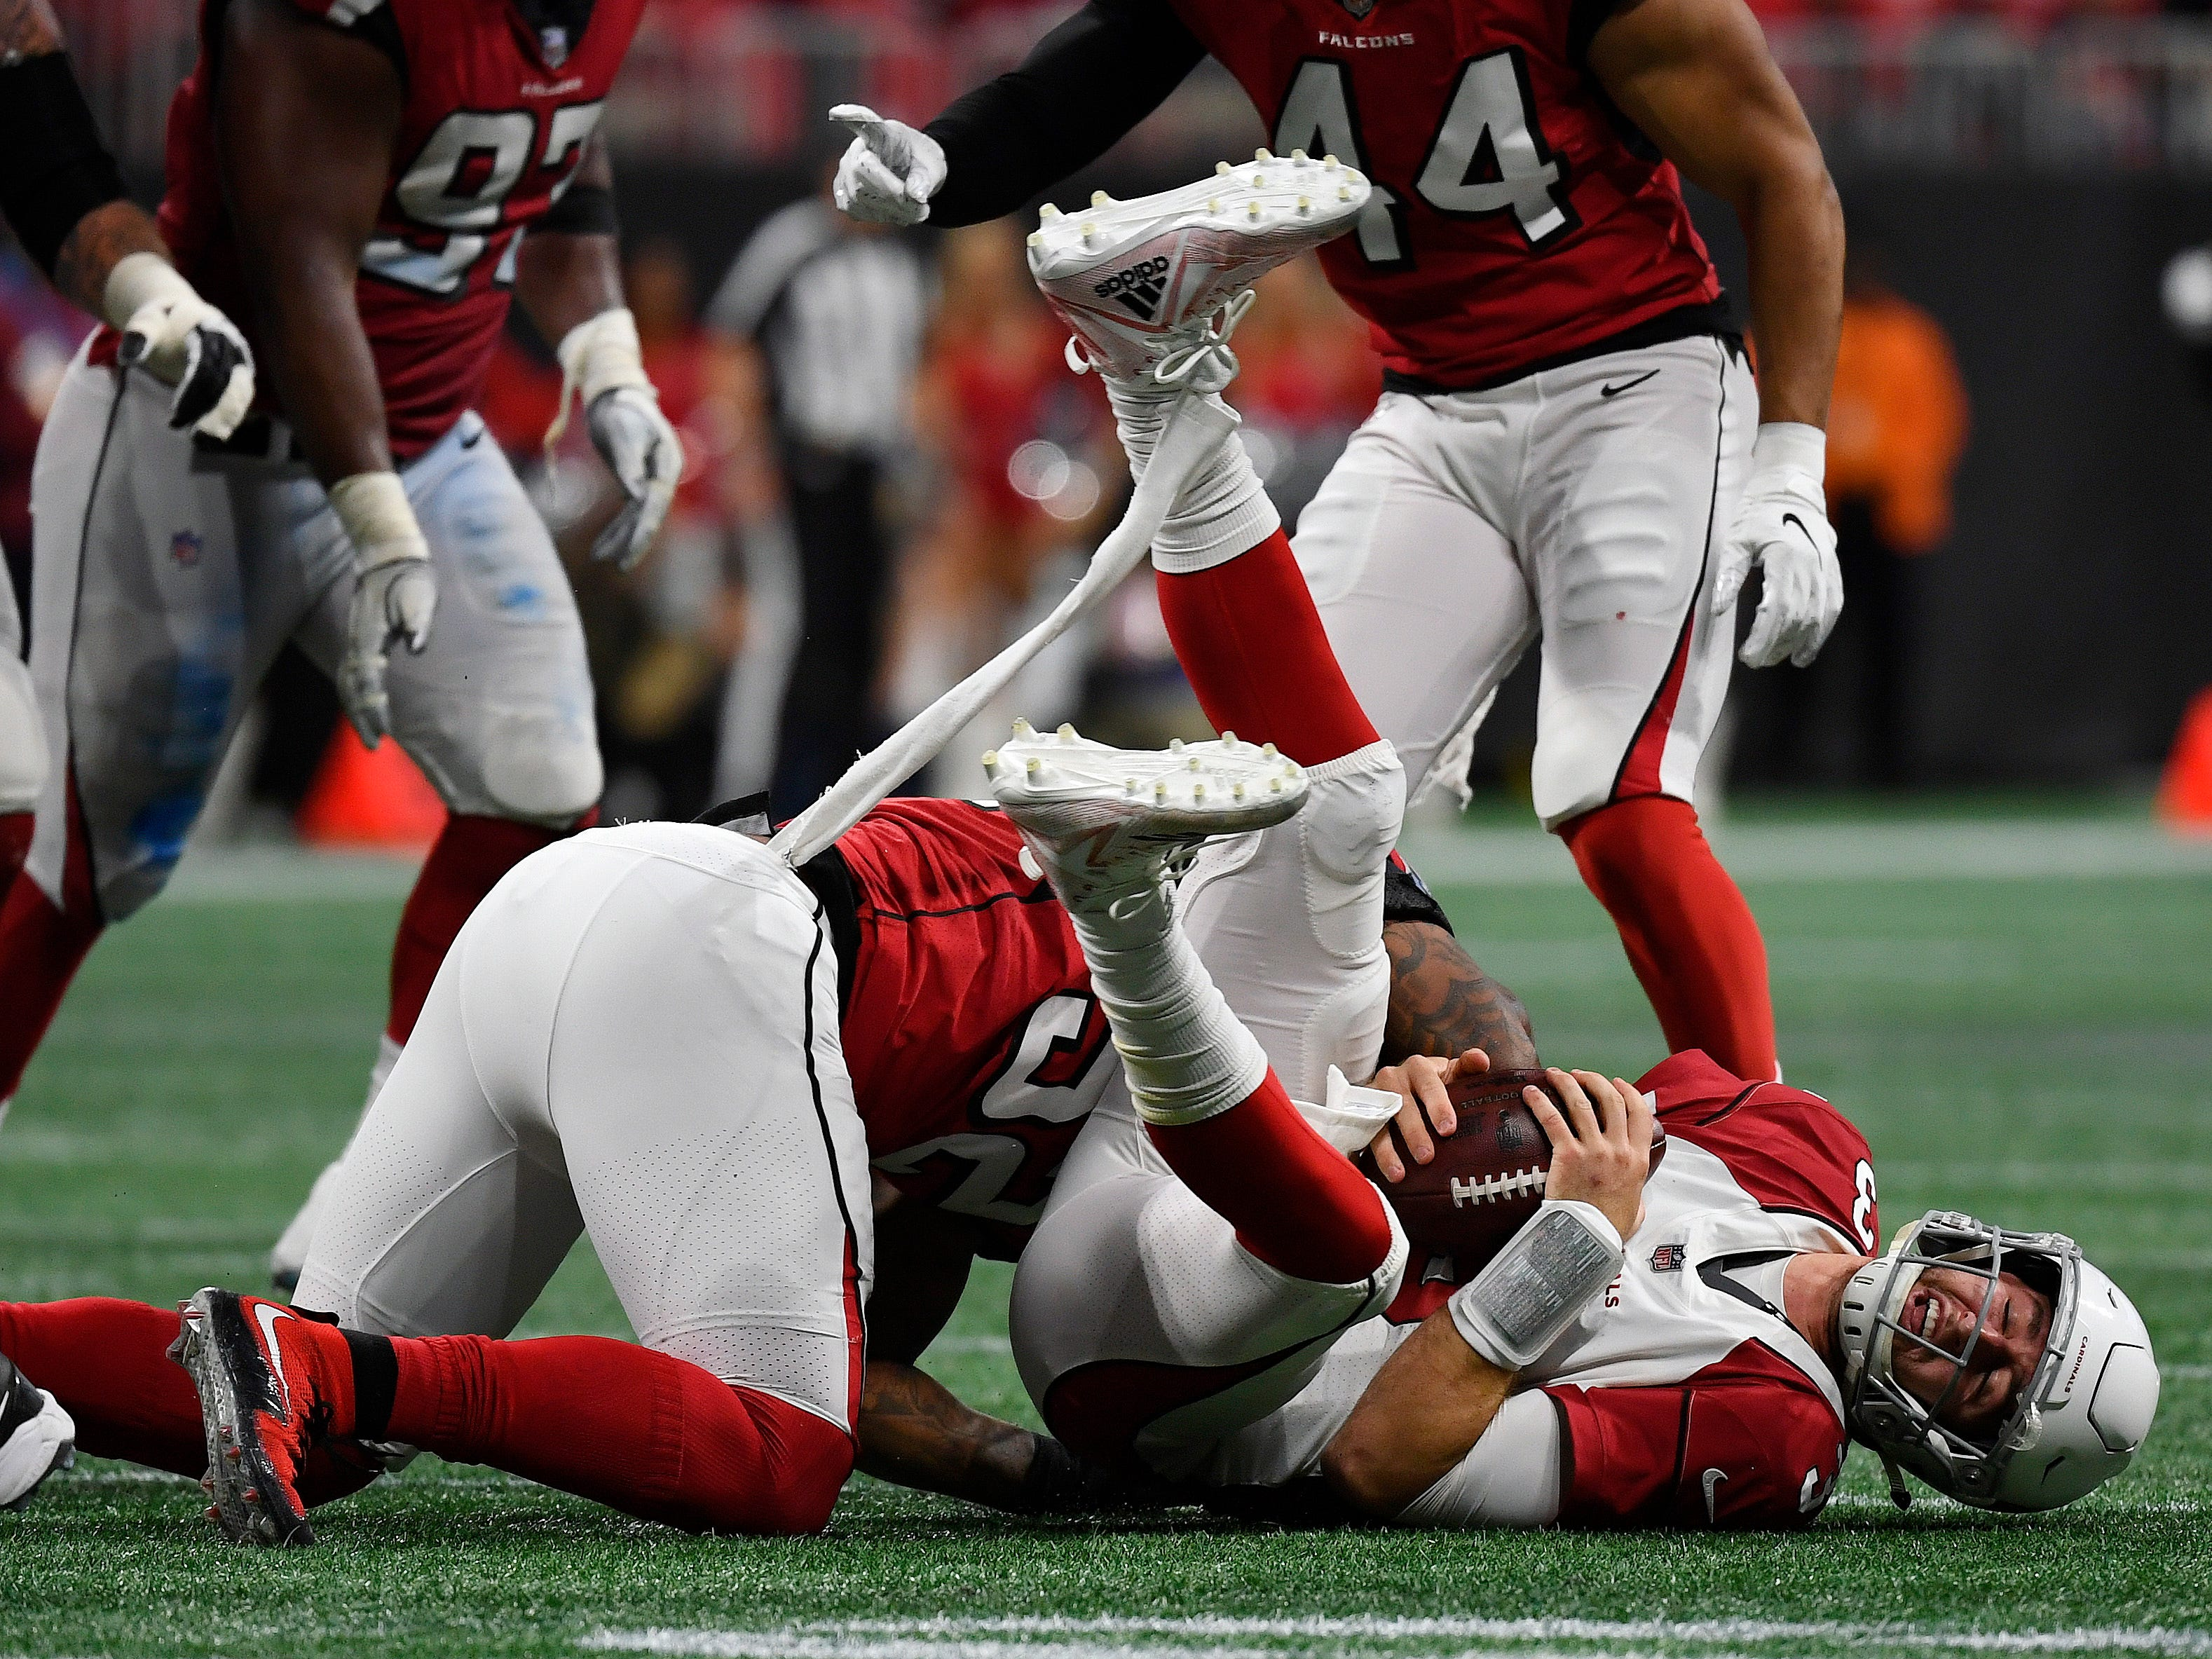 Arizona Cardinals quarterback Josh Rosen (3) is sacked by Atlanta Falcons defensive end Bruce Irvin (52) during the second half of an NFL football game, Sunday, Dec. 16, 2018, in Atlanta.